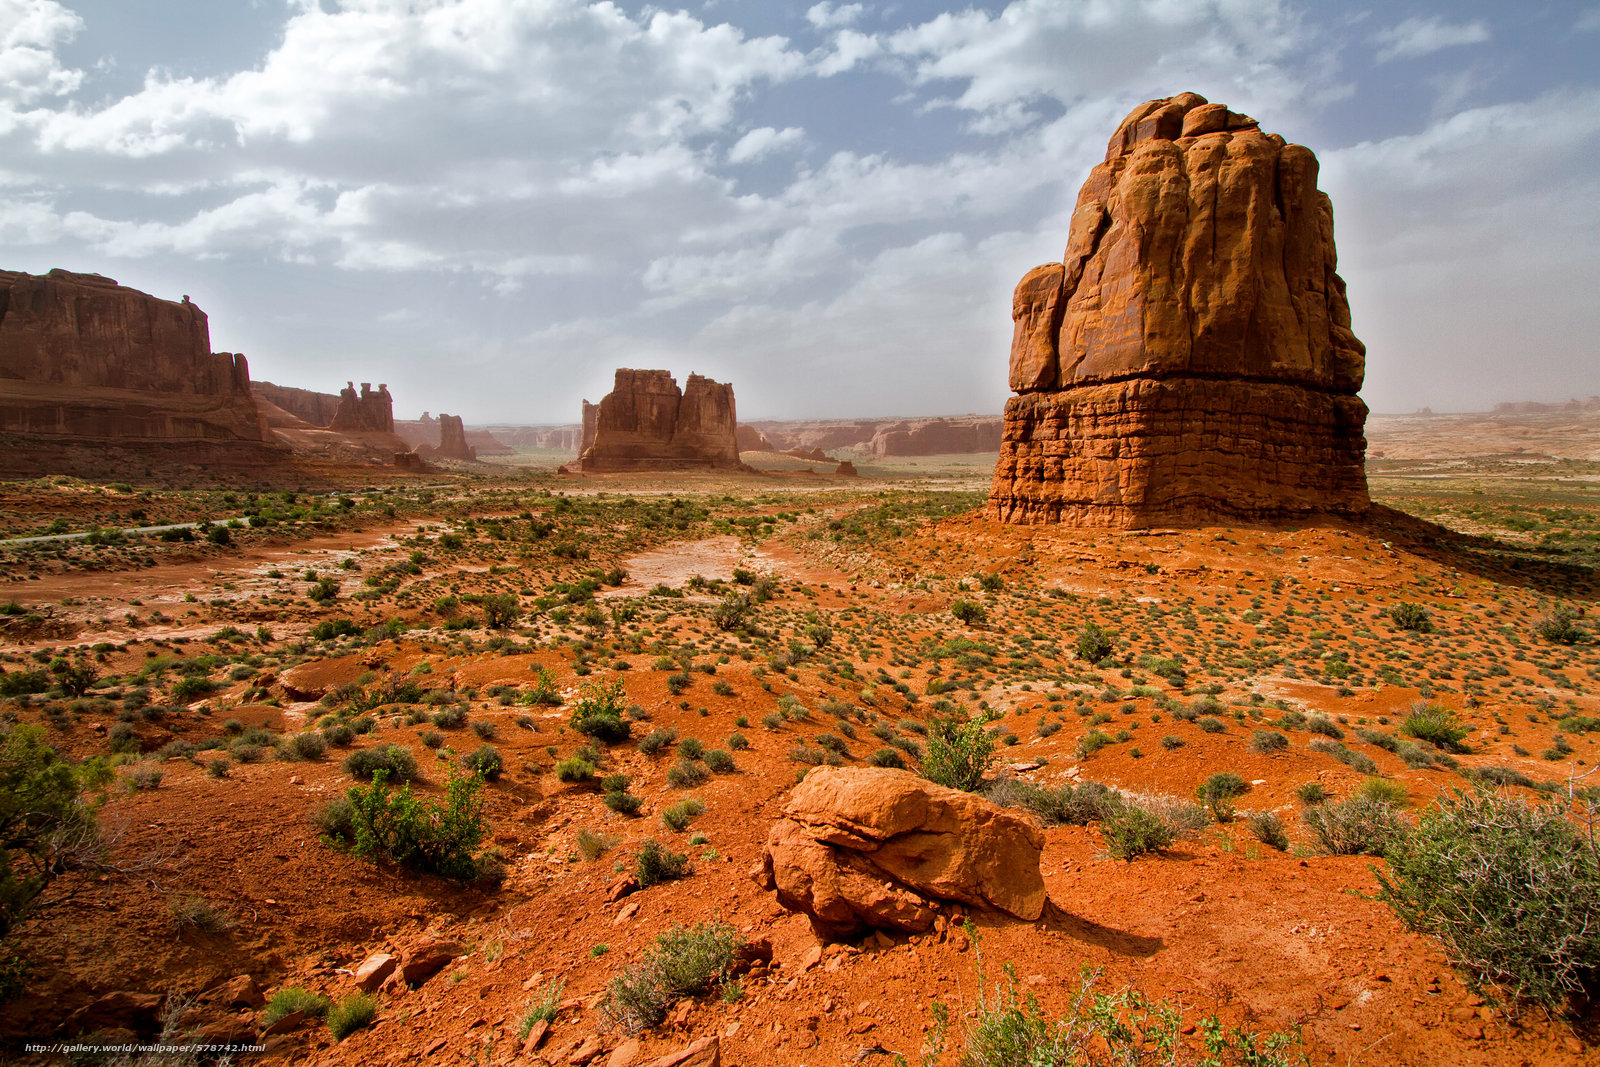 Download wallpaper Arches National Park Utah Mountains Rocks 1200x800